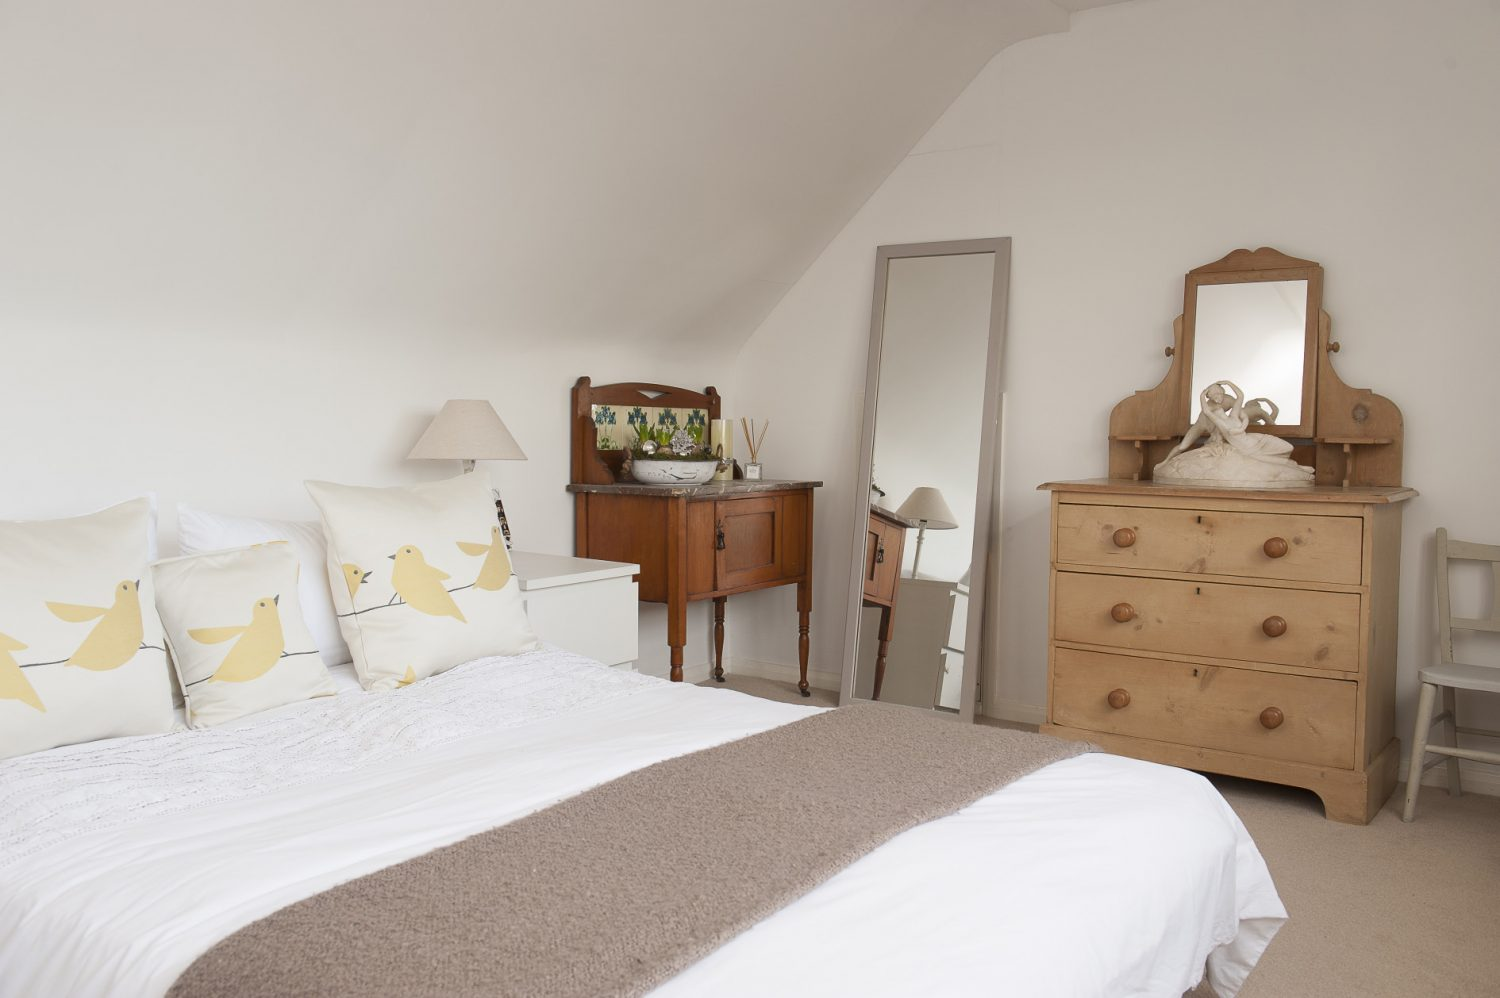 Next to the sitting room, a discreet staircase leads up to a pretty, vaulted guest bedroom